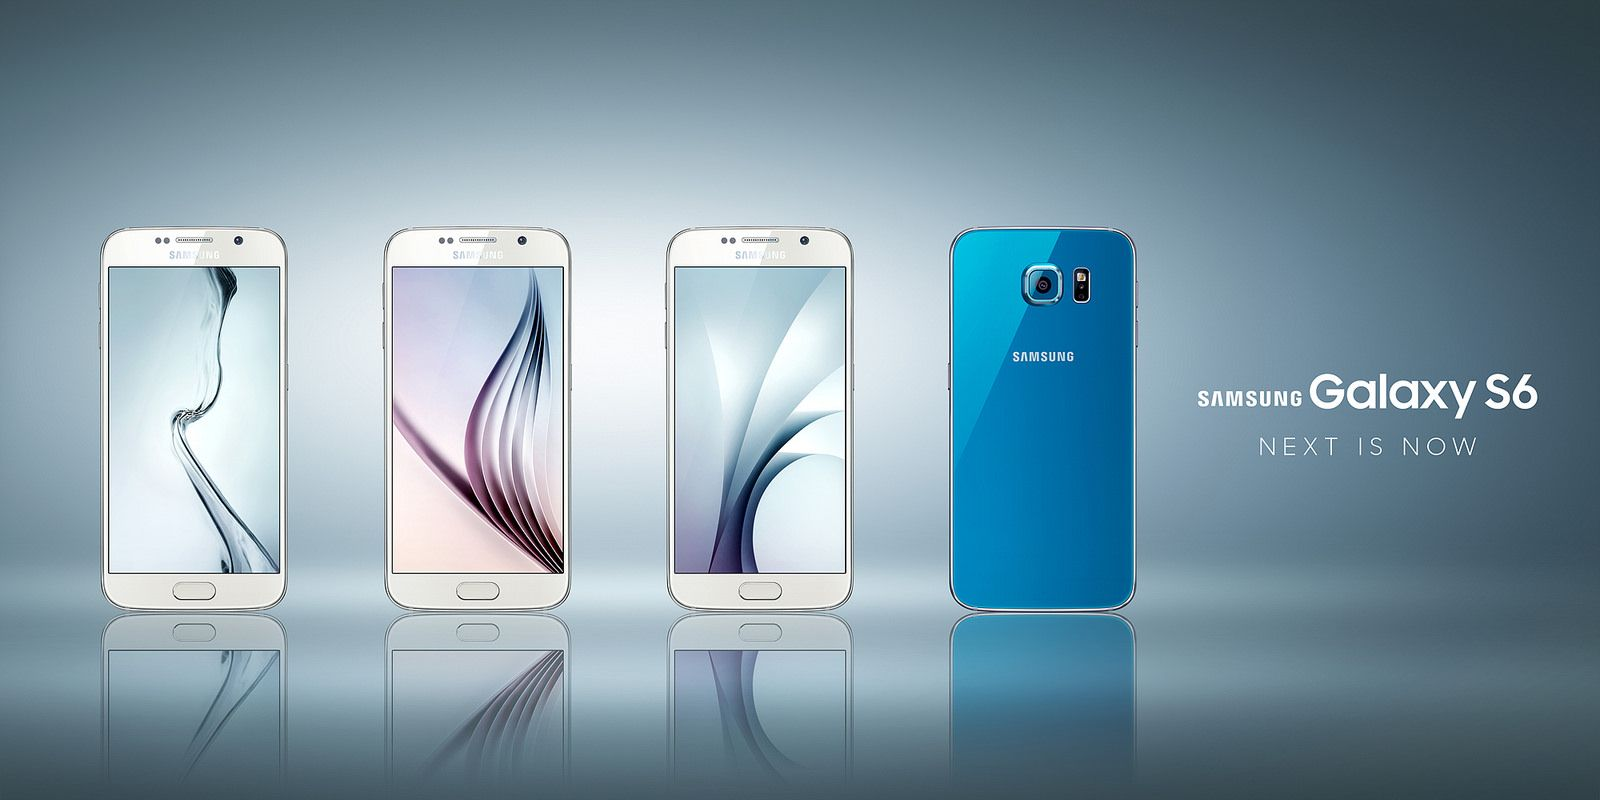 Verizon's Samsung Galaxy S6 (32GB) and S6 edge (128GB) selling for just $399 and $599 in the US